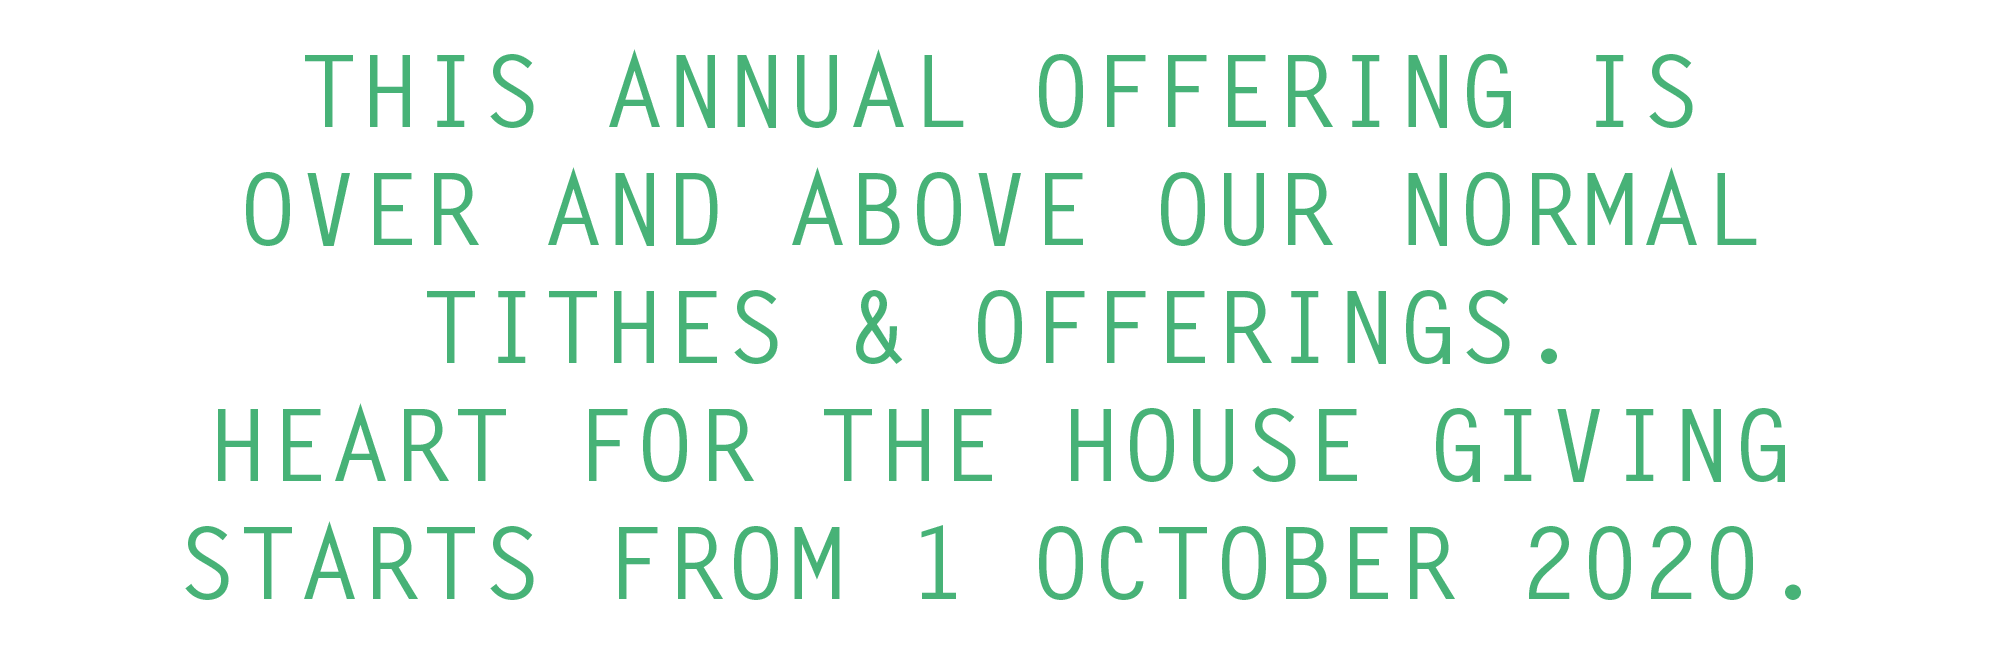 This annual offering is over and above our normal Tithes & Offerings. Heart for the House giving starts from 1 October 2020.